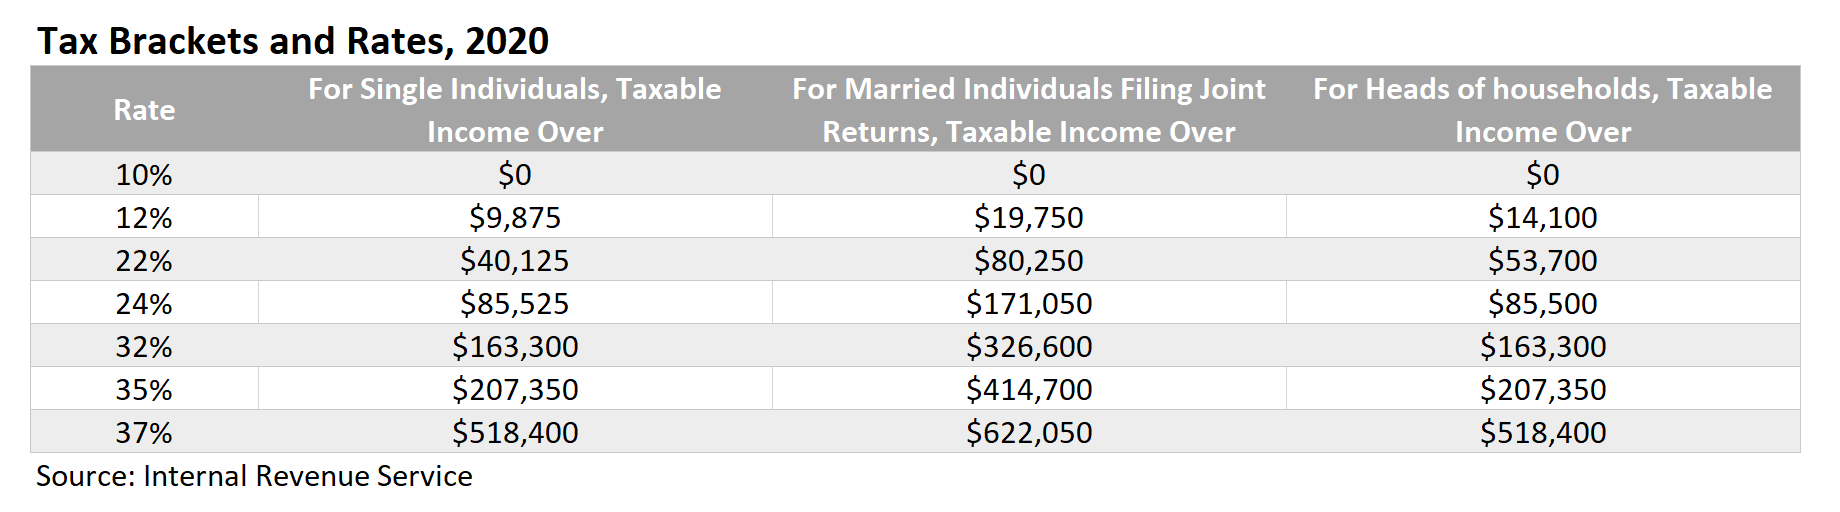 Tax Brackets and Rates, 2020